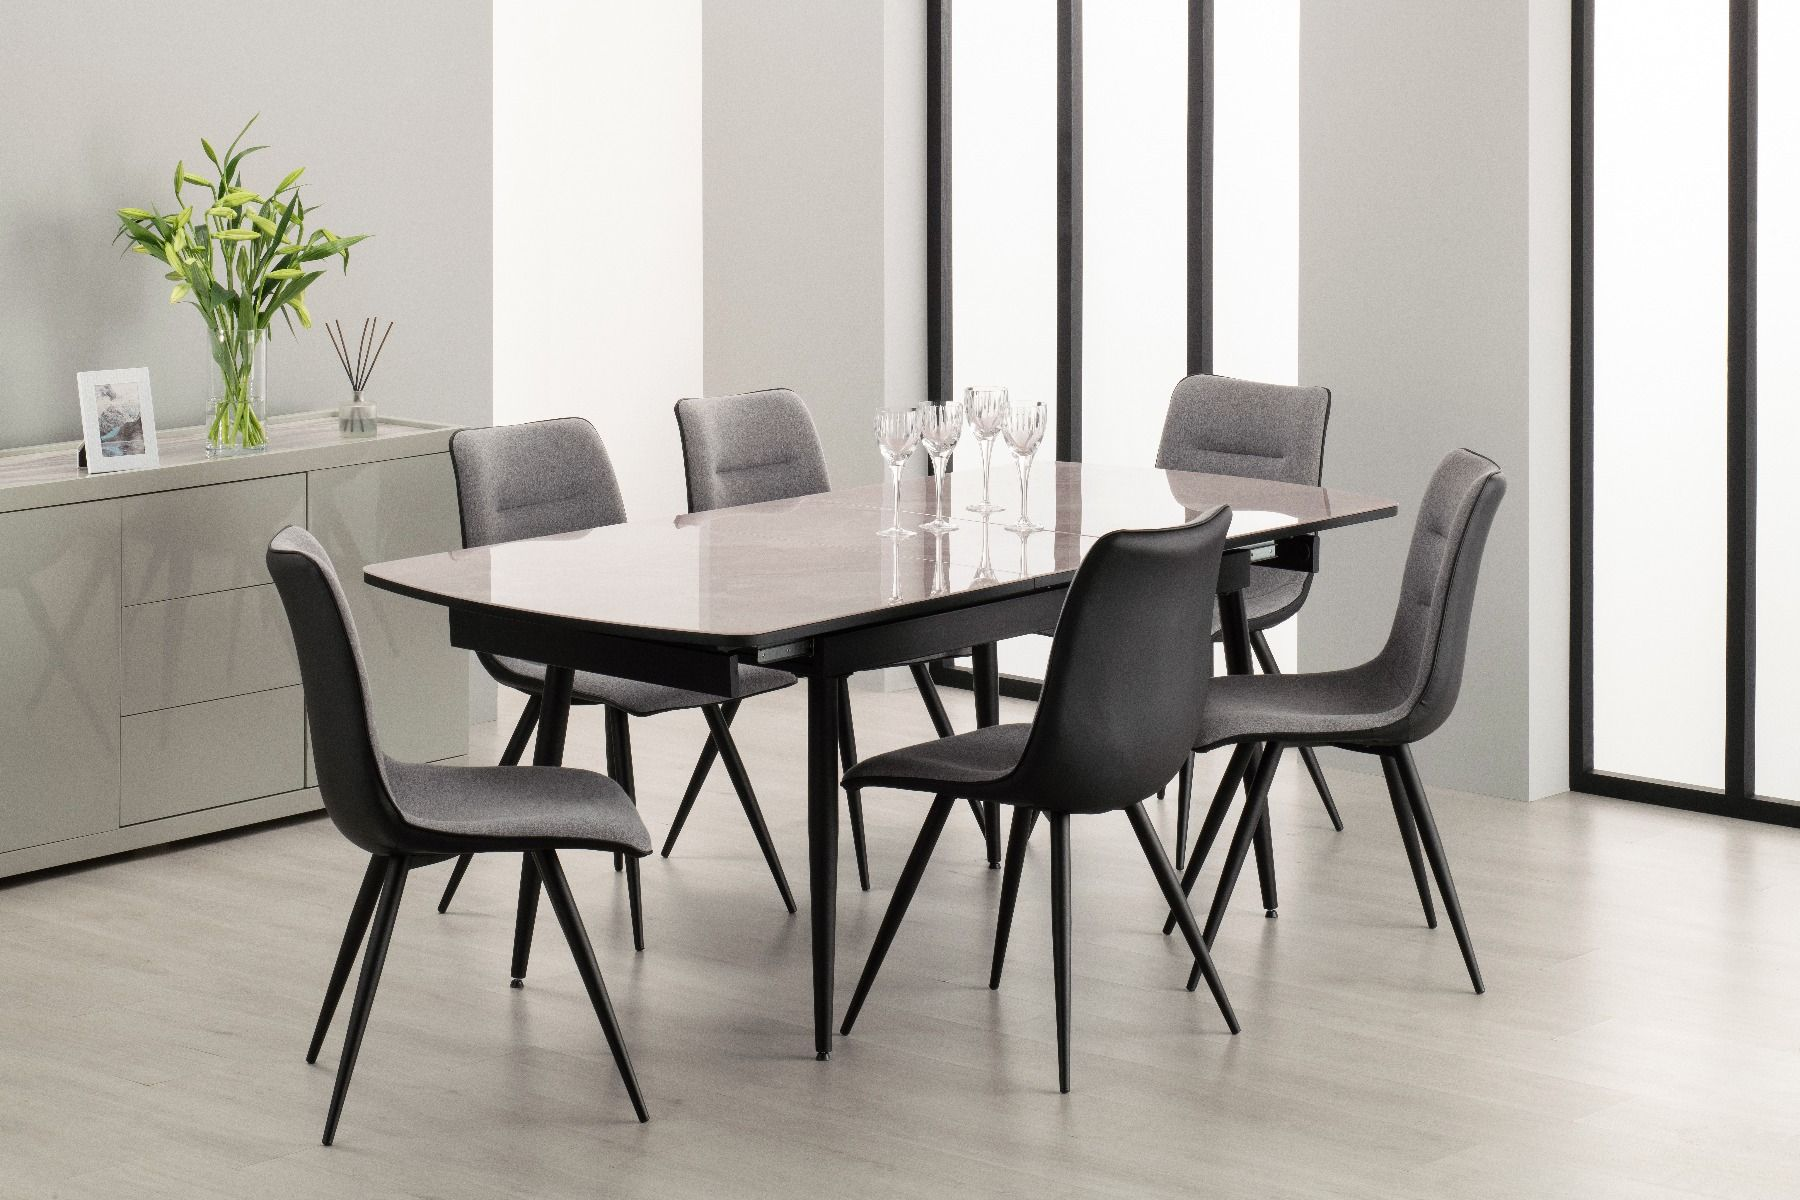 extending dining set with marble effect top and six chairs by derrys furniture